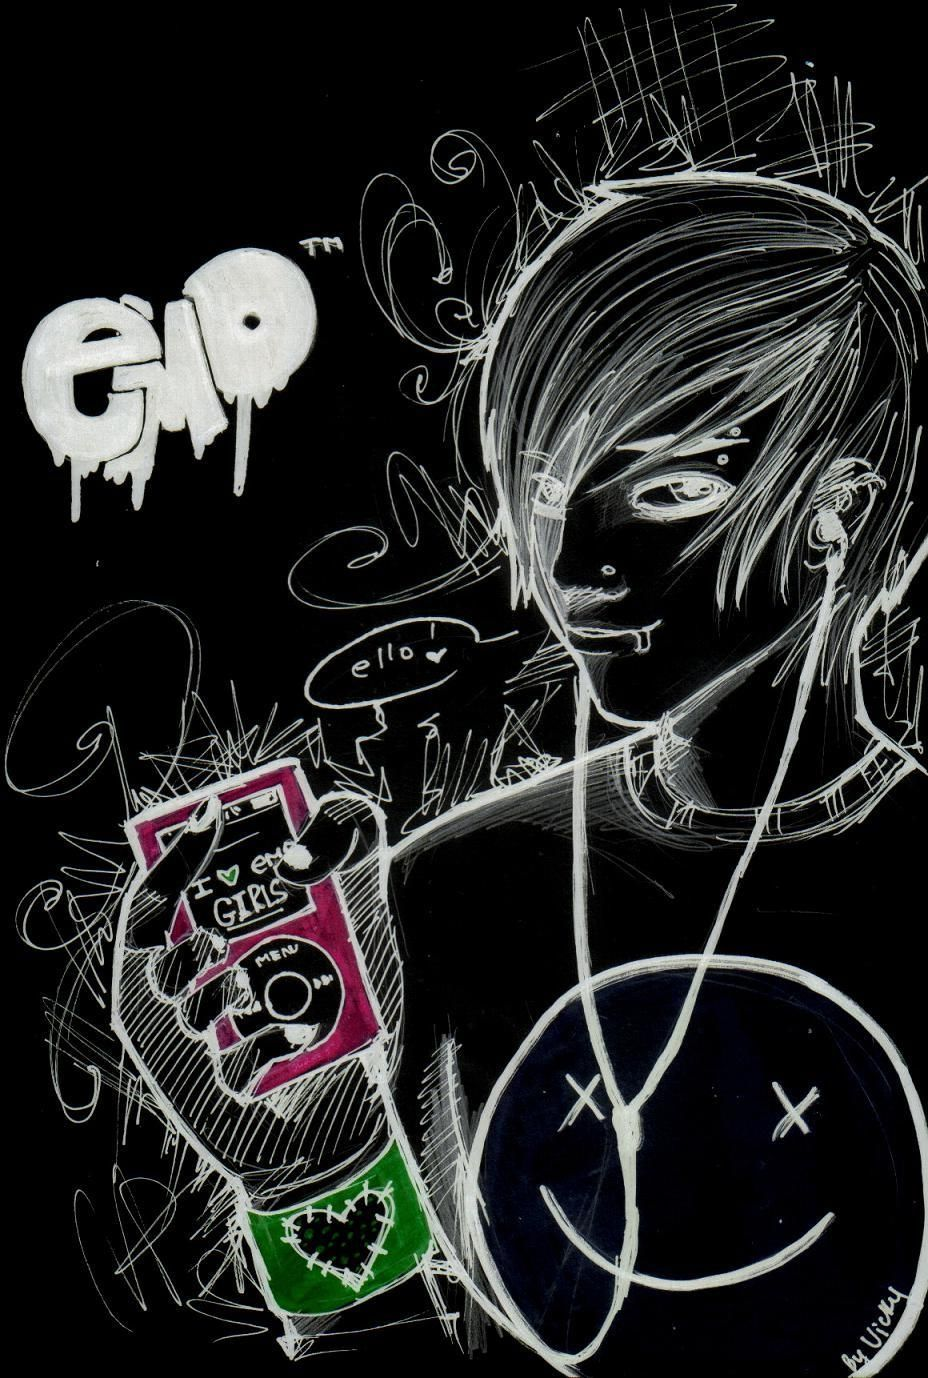 Emo Wallpaper For Mobile Phone Tablet Desktop Computer And Other Devices Hd And 4k Wallpapers In 2021 Emo Wallpaper Emo Girl Wallpaper Emo Backgrounds